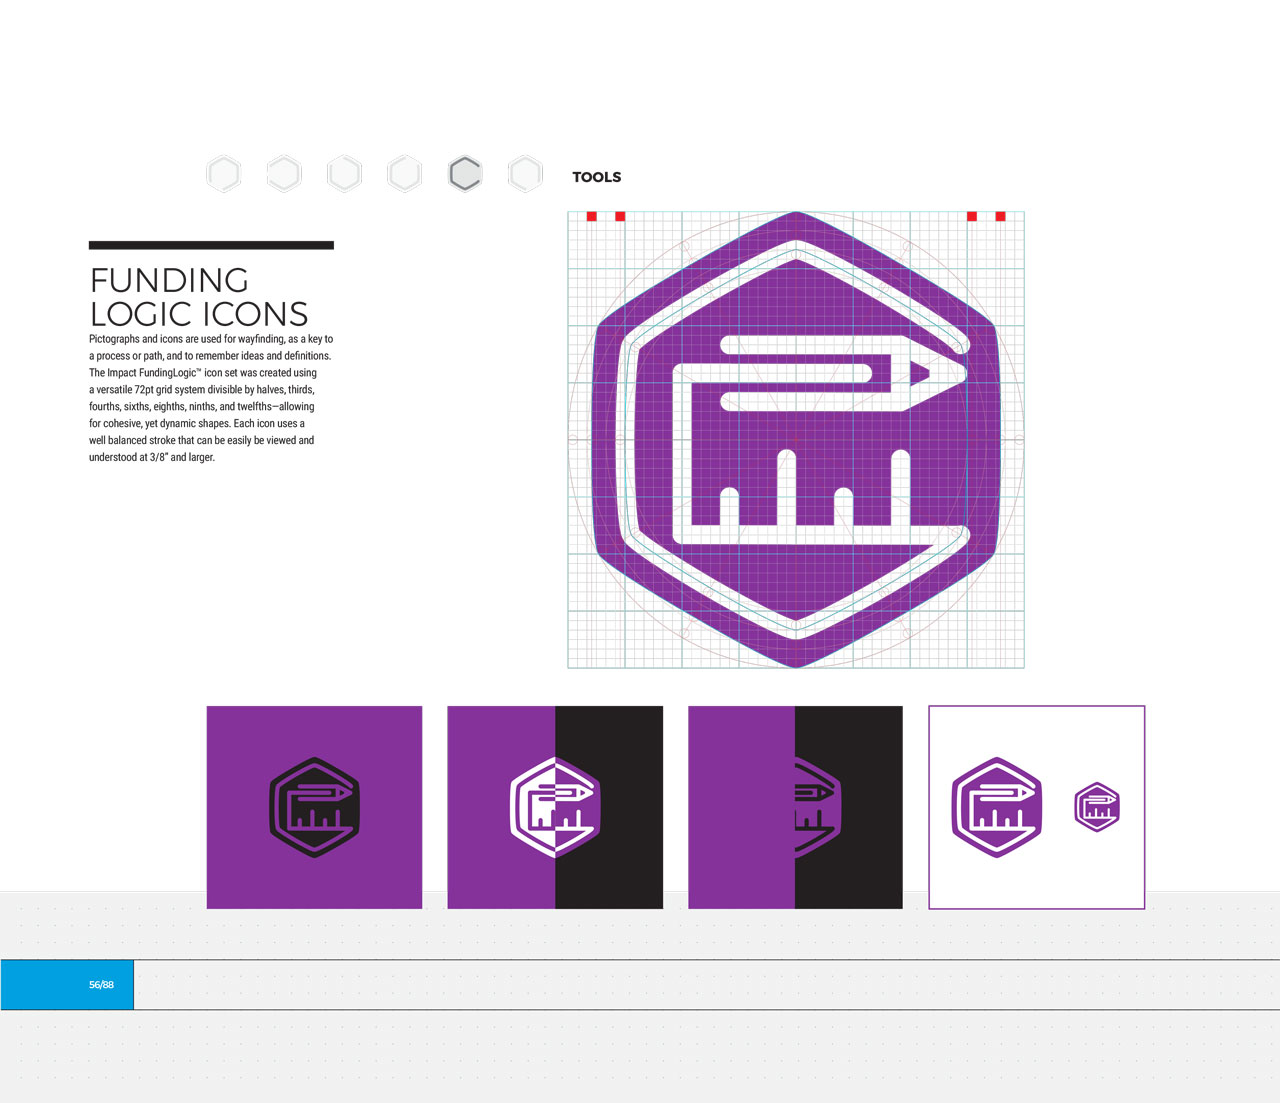 Single page from brand identity manual displaying purple, hexagonal tools icon